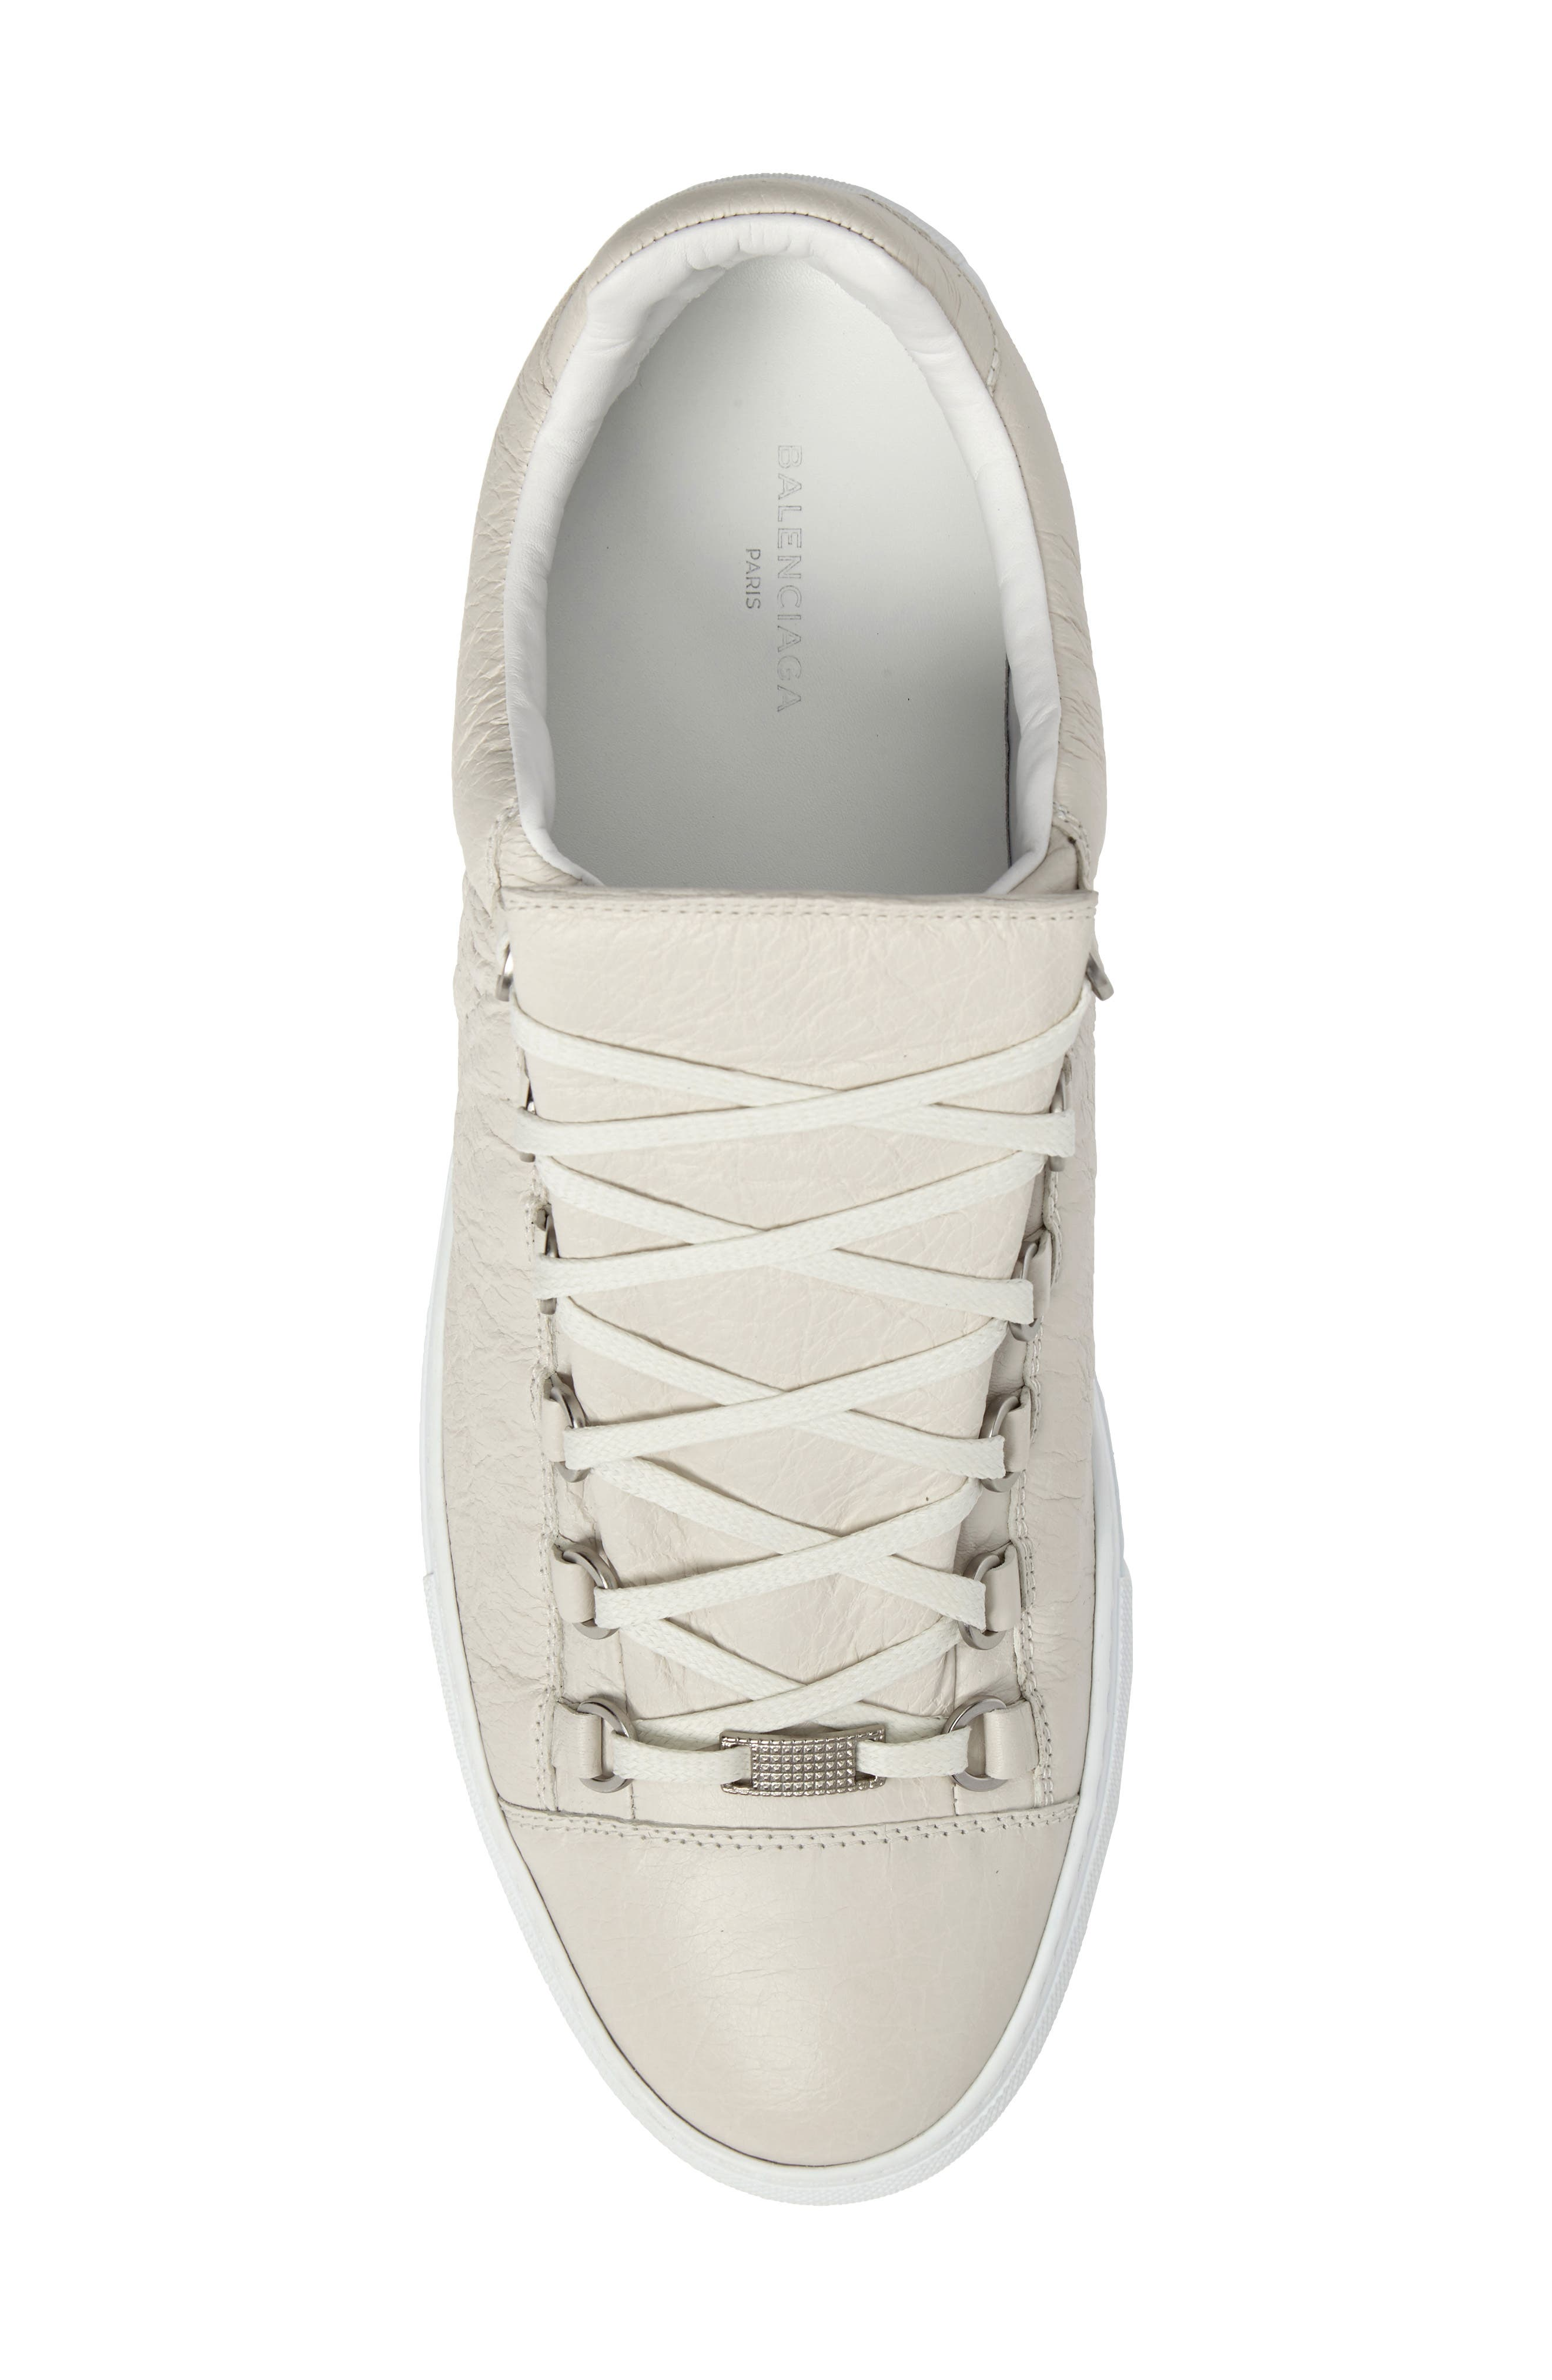 Arena Low Sneaker,                             Alternate thumbnail 5, color,                             Extra Blanc Leather